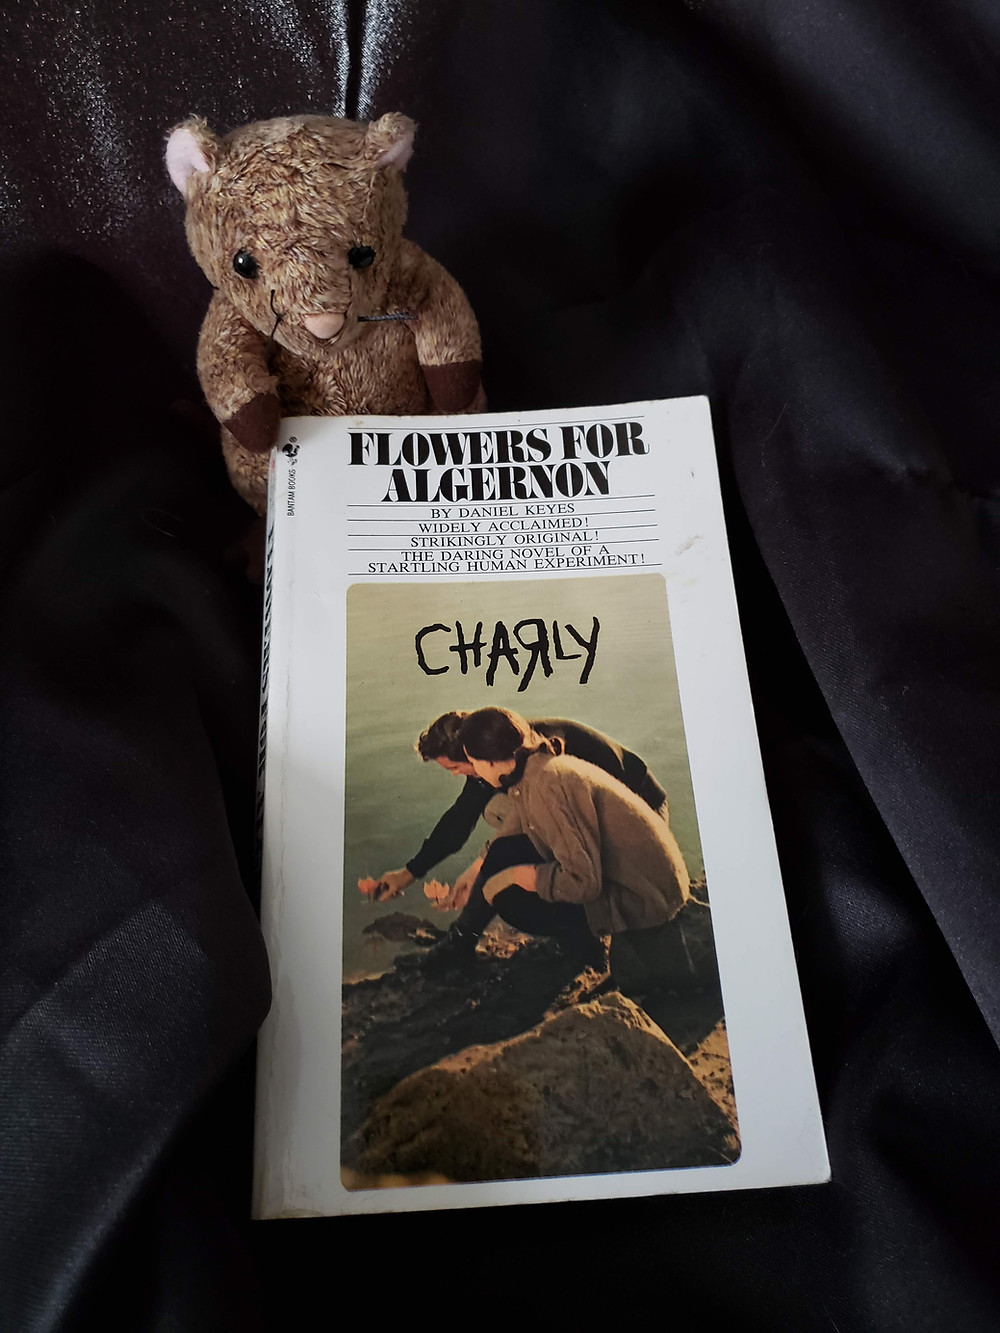 The book Flowers for Algernon by Daniel Keyes posed on a black cloth with a Mouse stuffed animal holding the top left corner of the book.